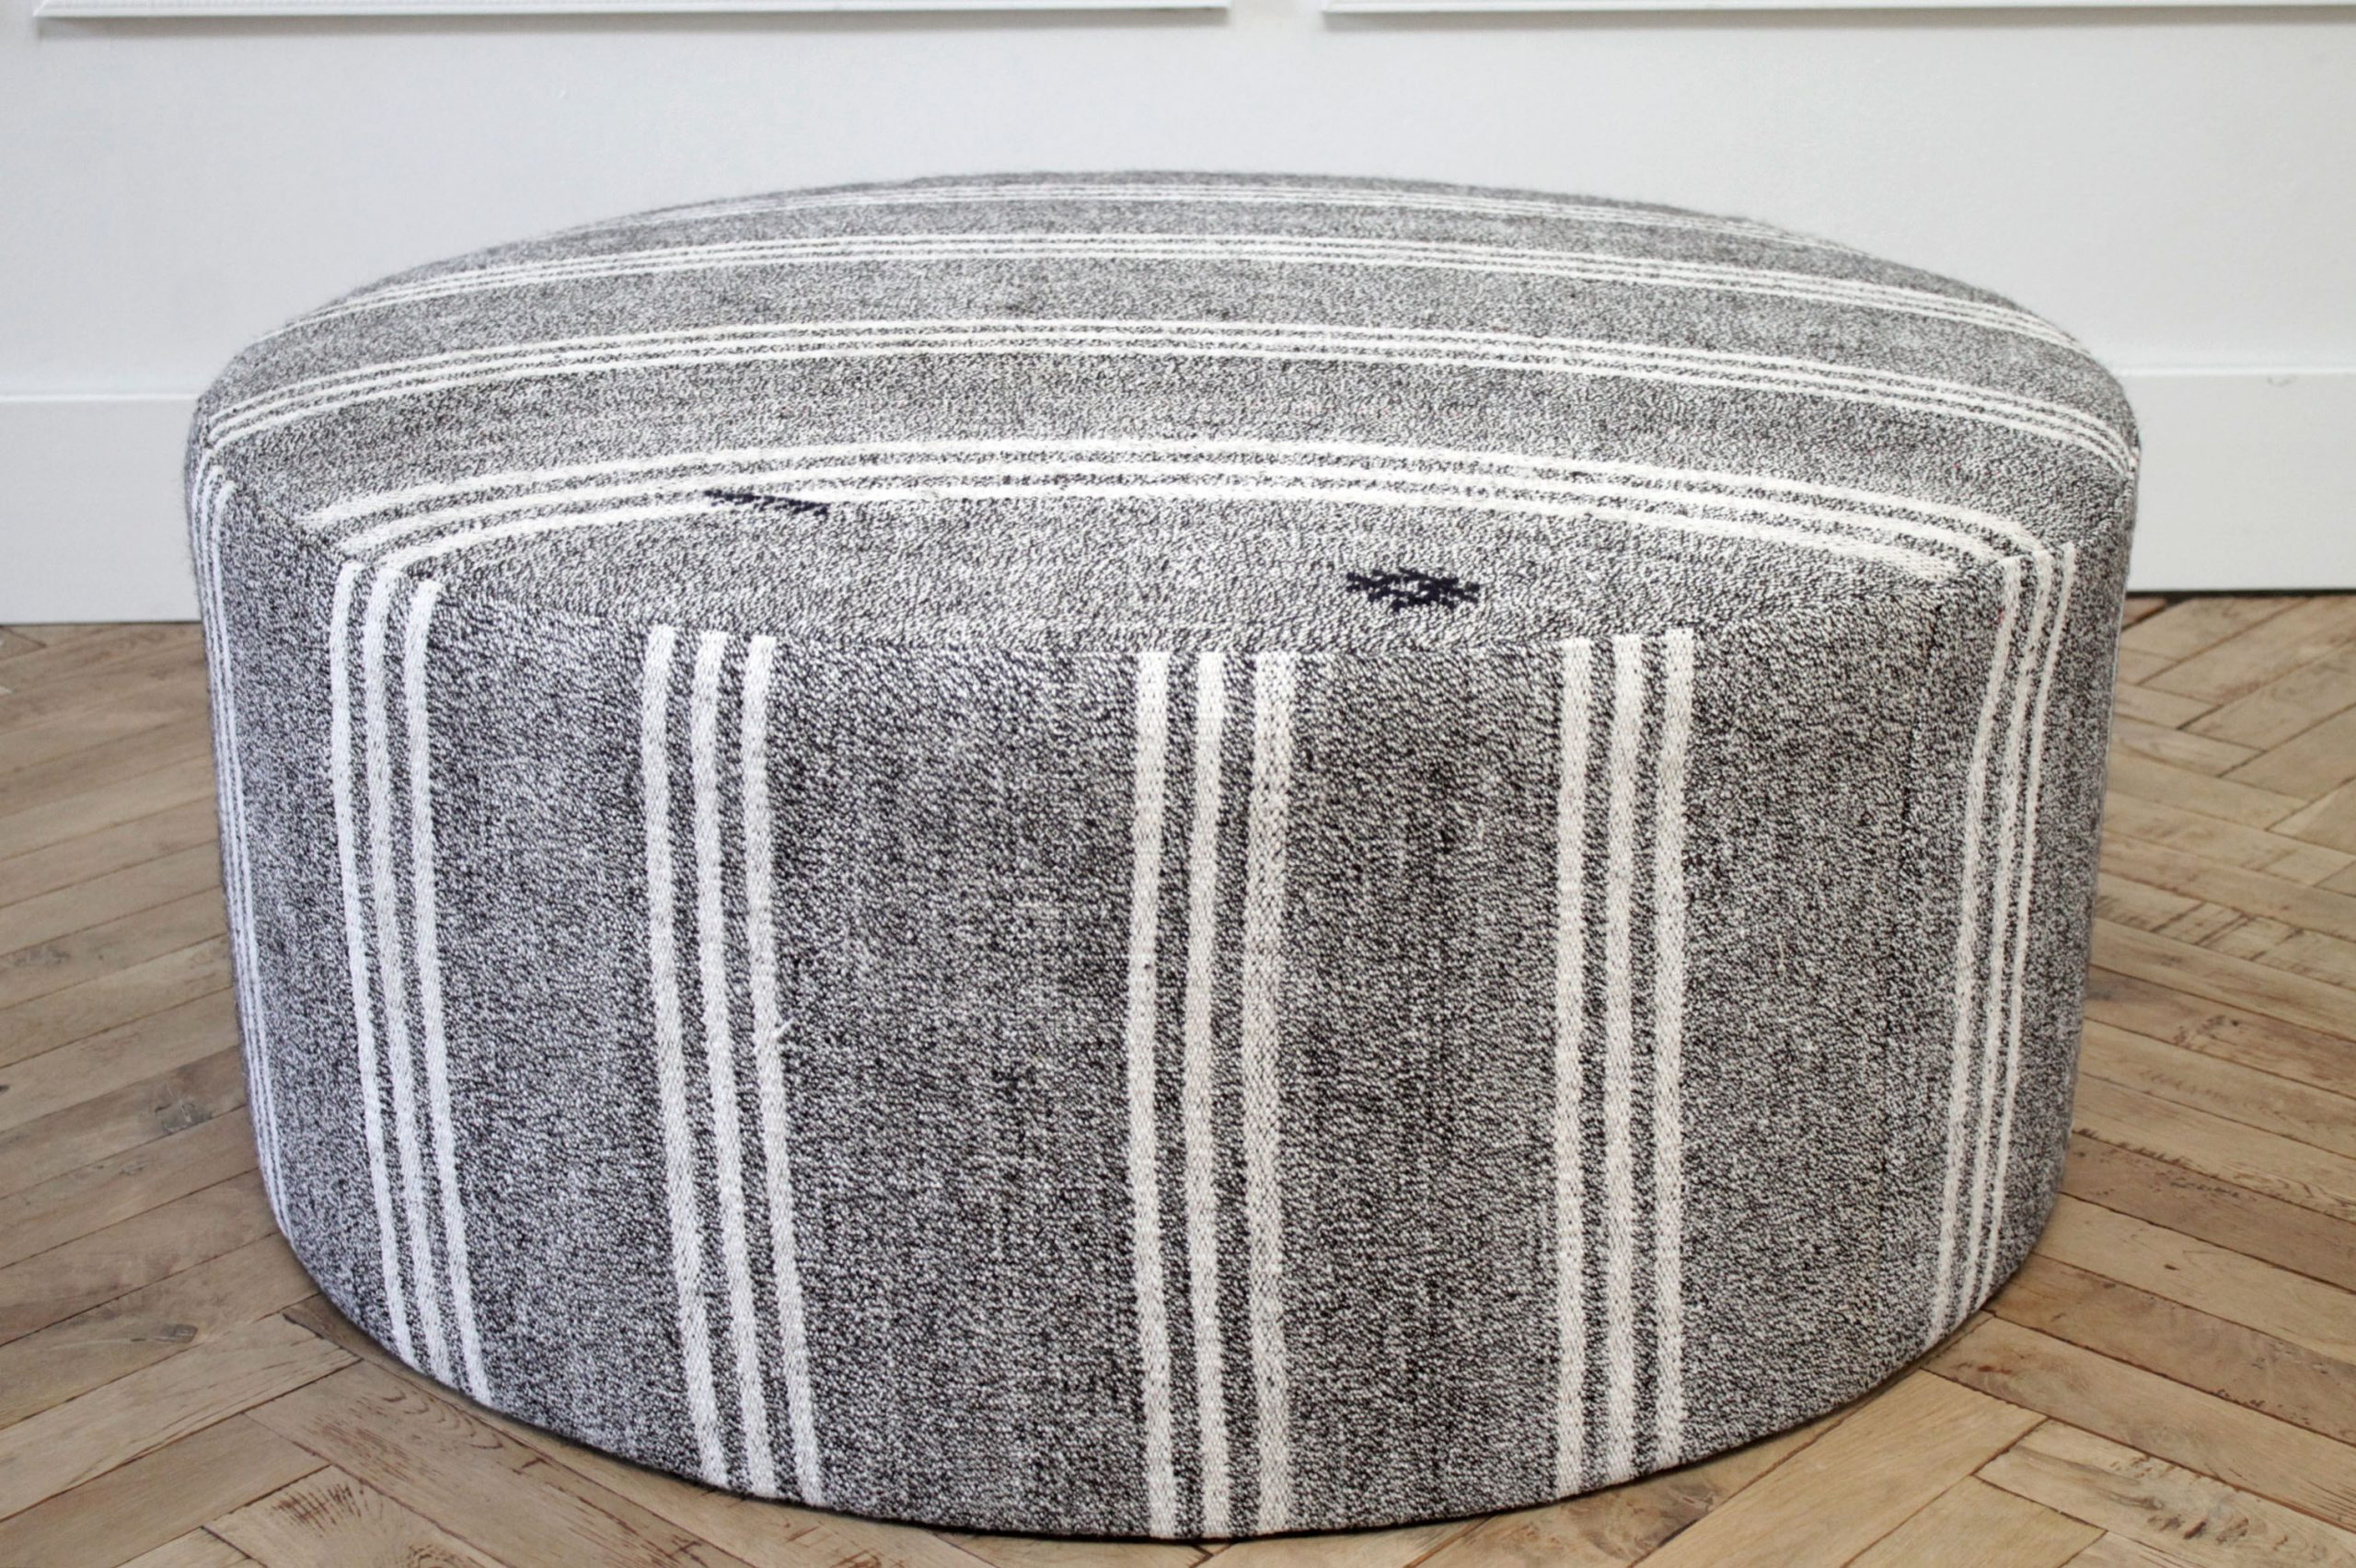 Custom Made Vintage Turkish Rug Round Cocktail Ottoman Coffee Table